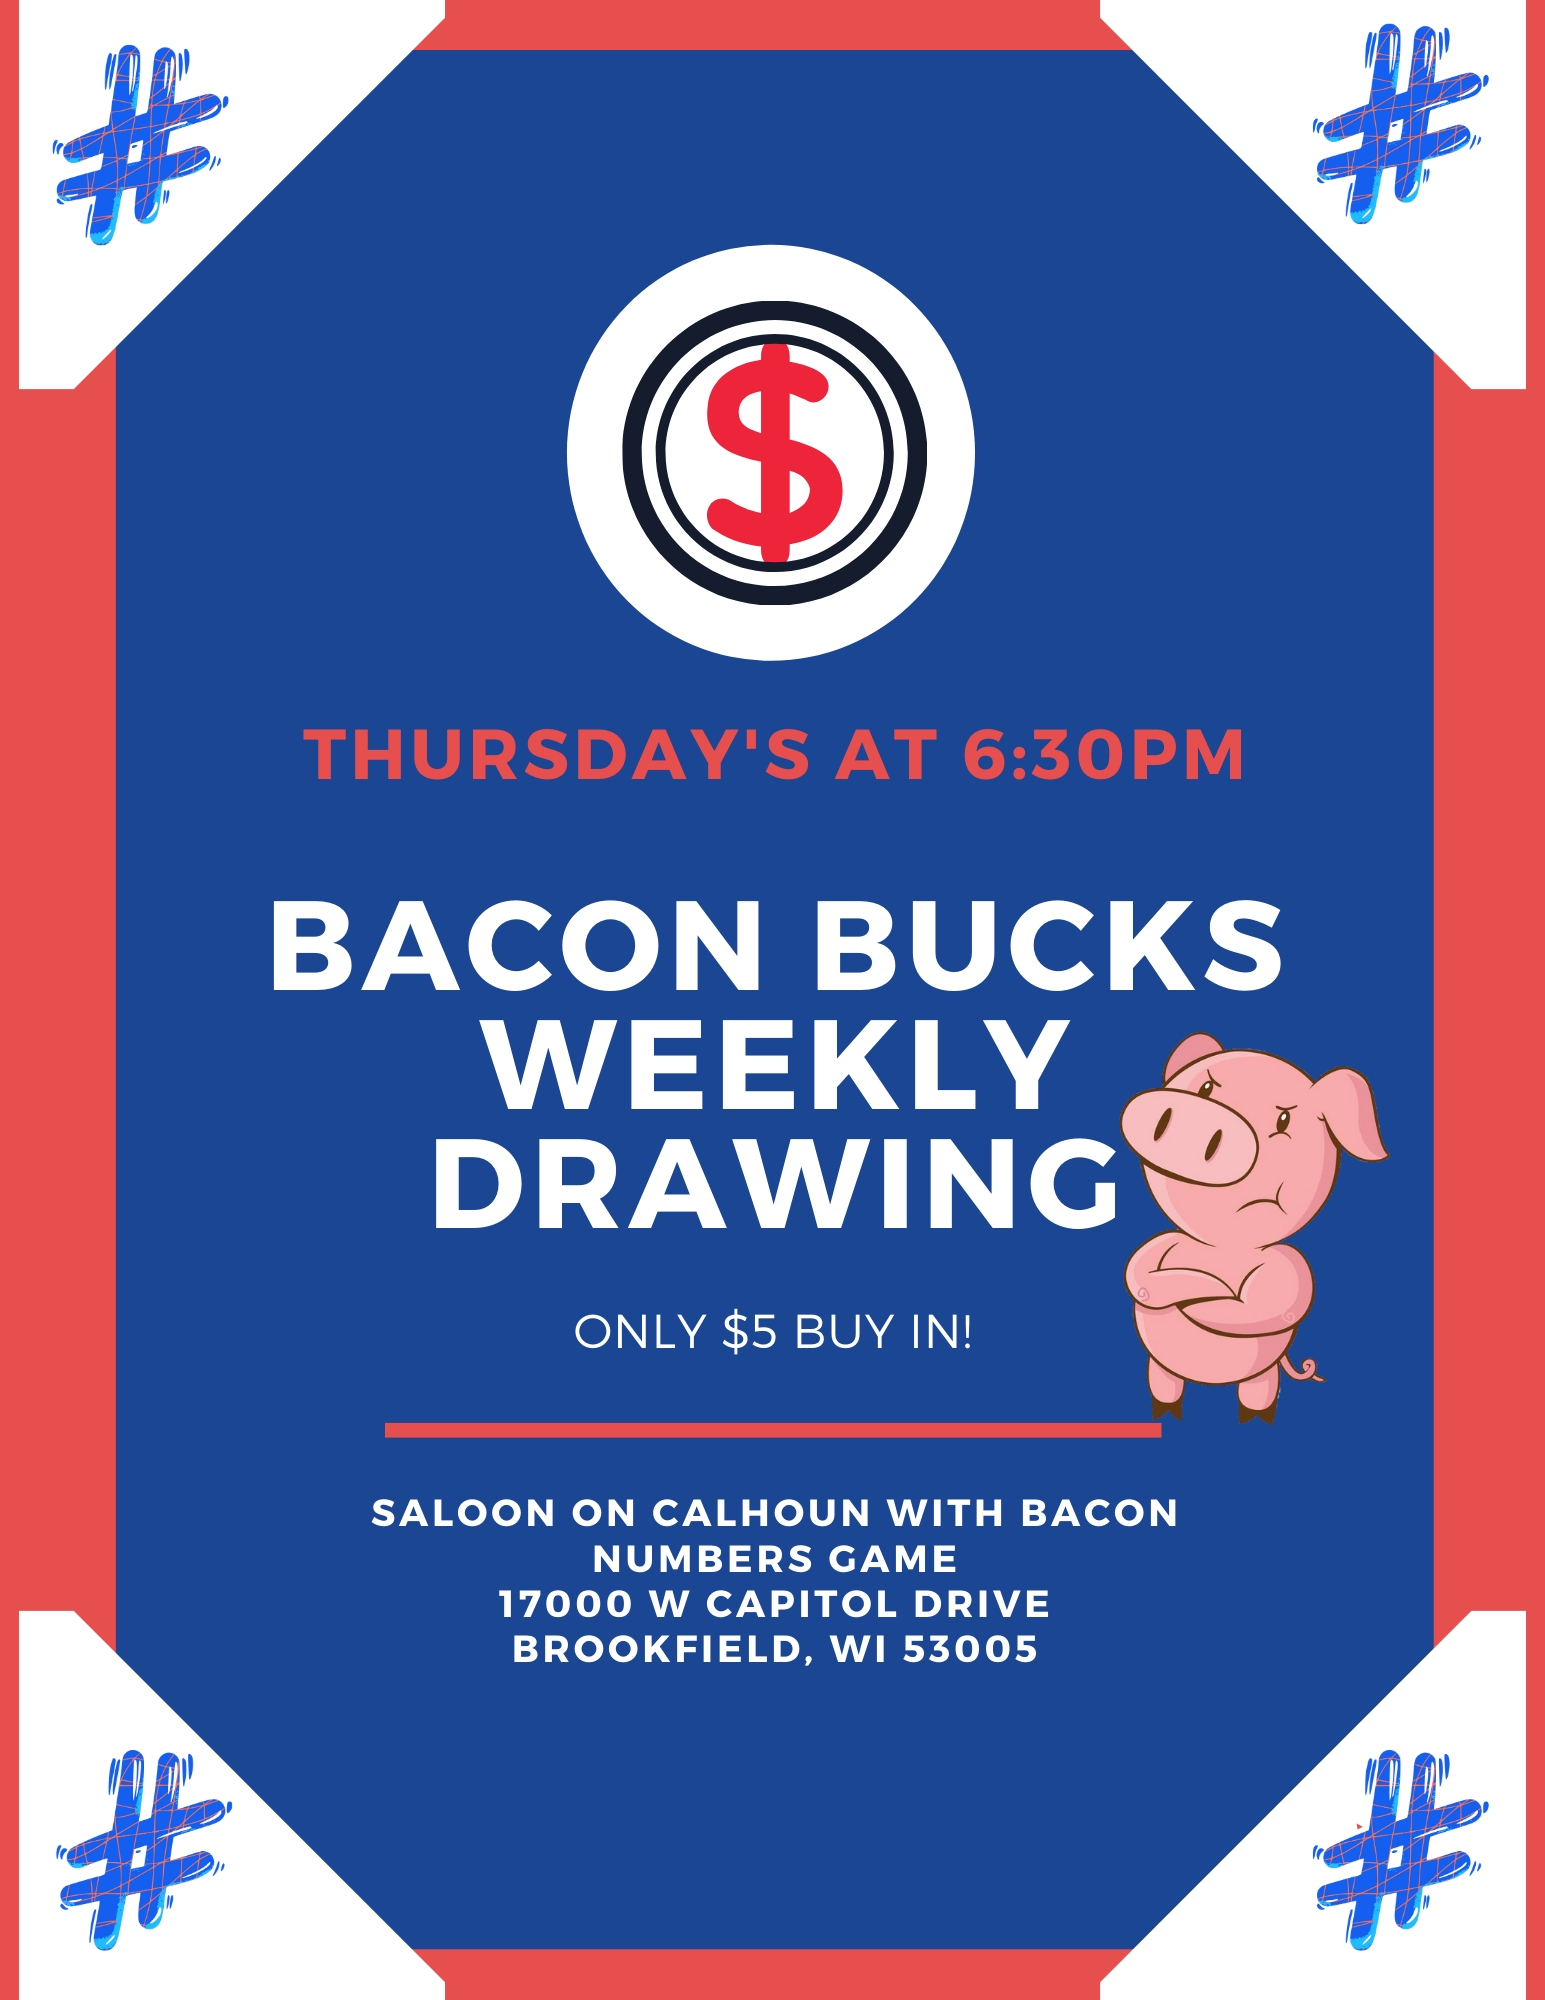 Bacon Bucks Weekly Drawing